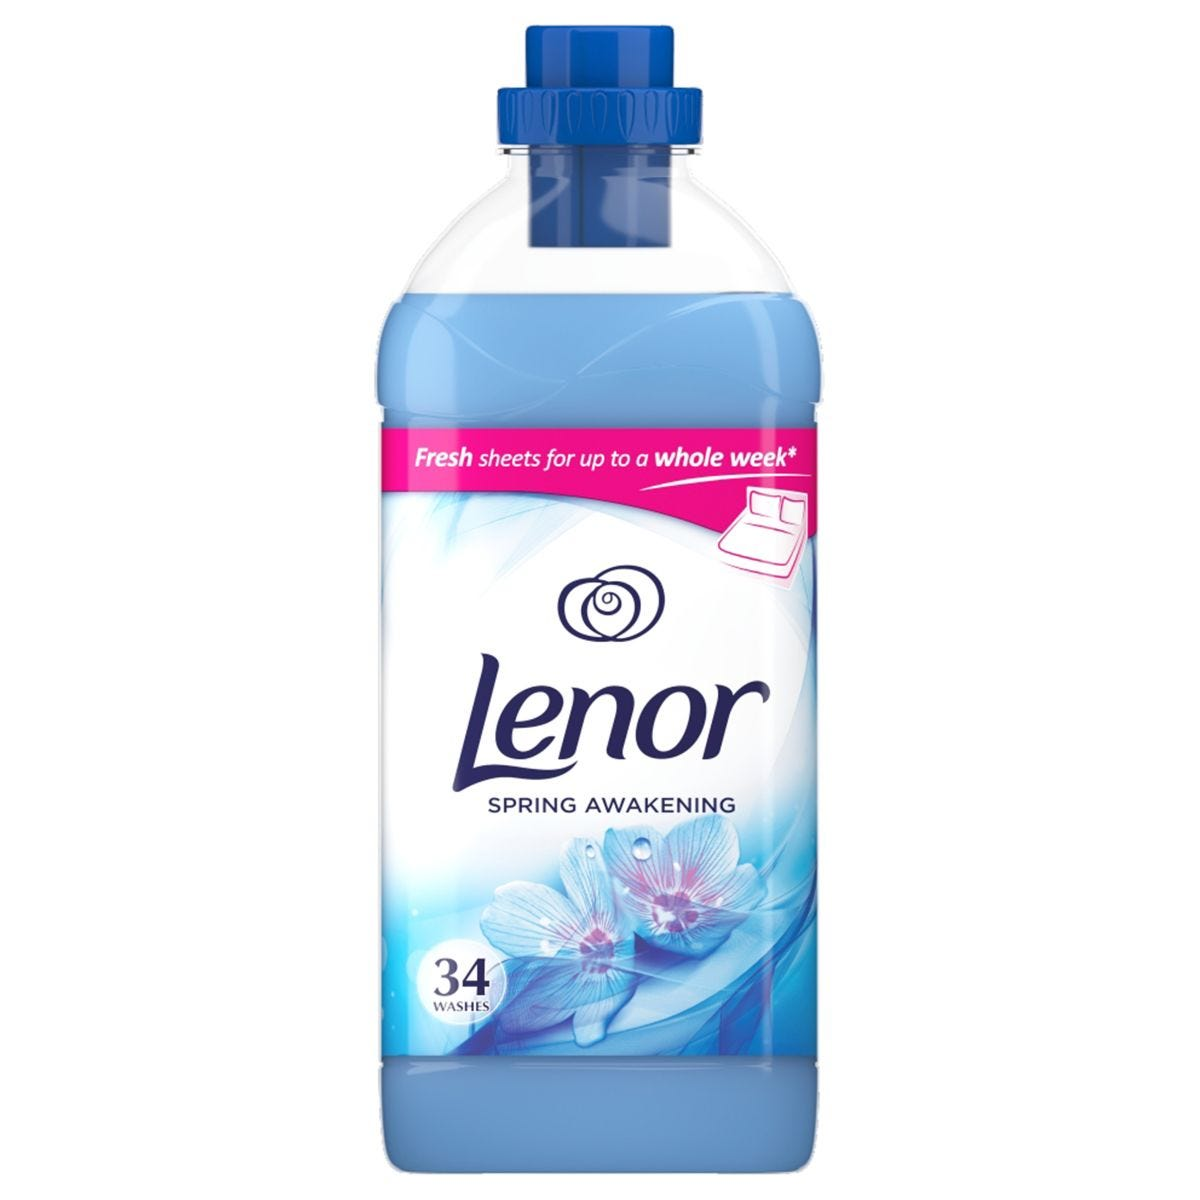 Lenor Spring Awakening Fabric Conditioner - 34 Washes